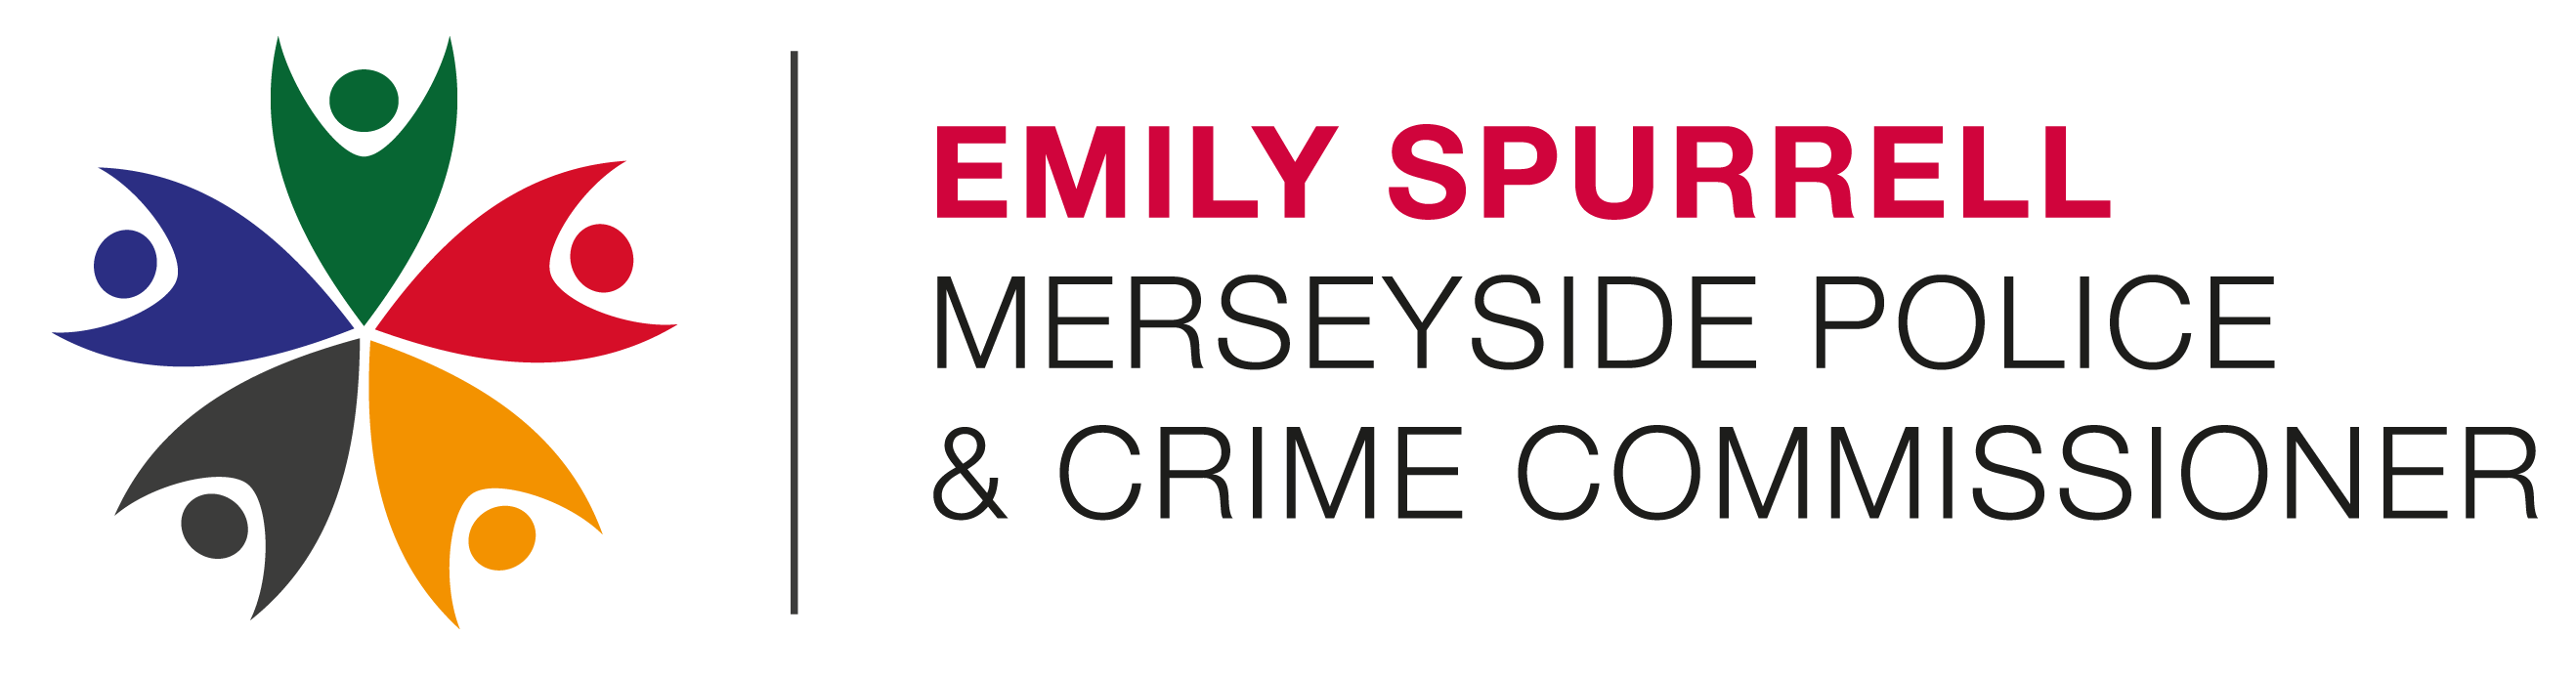 Emily Spurrell, Merseyside Police and Crime Commissioner